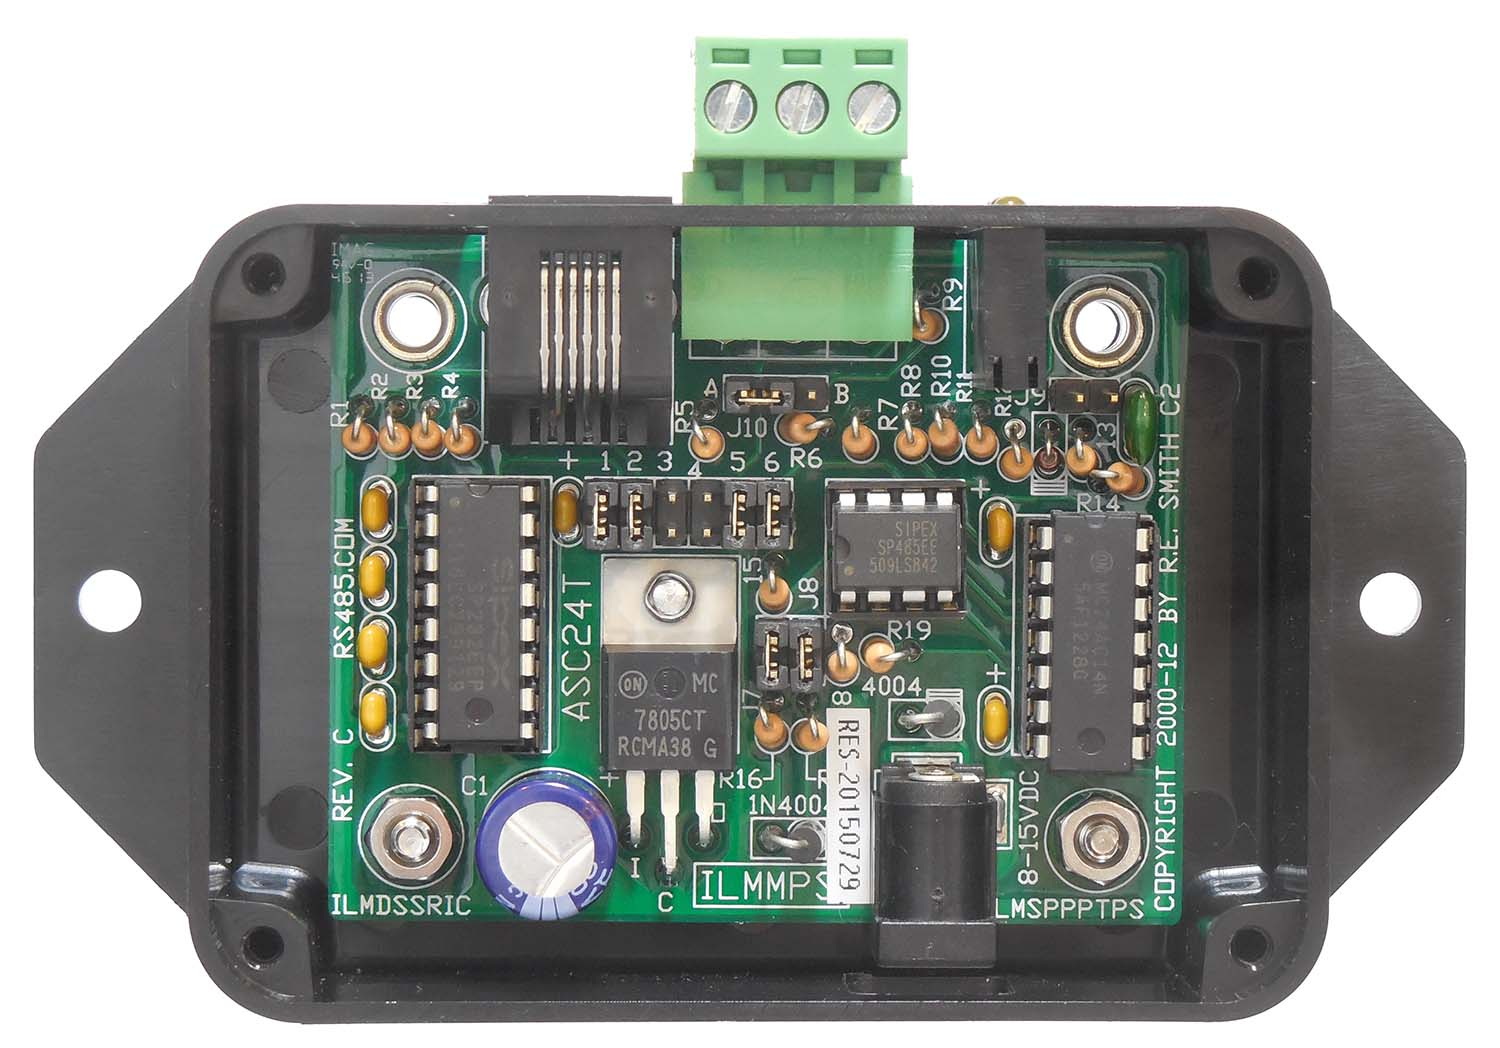 rs 232 to 485 converter circuit diagram 2002 ford f350 fuse box asc24t fast async rs232 rs485 automatic r e